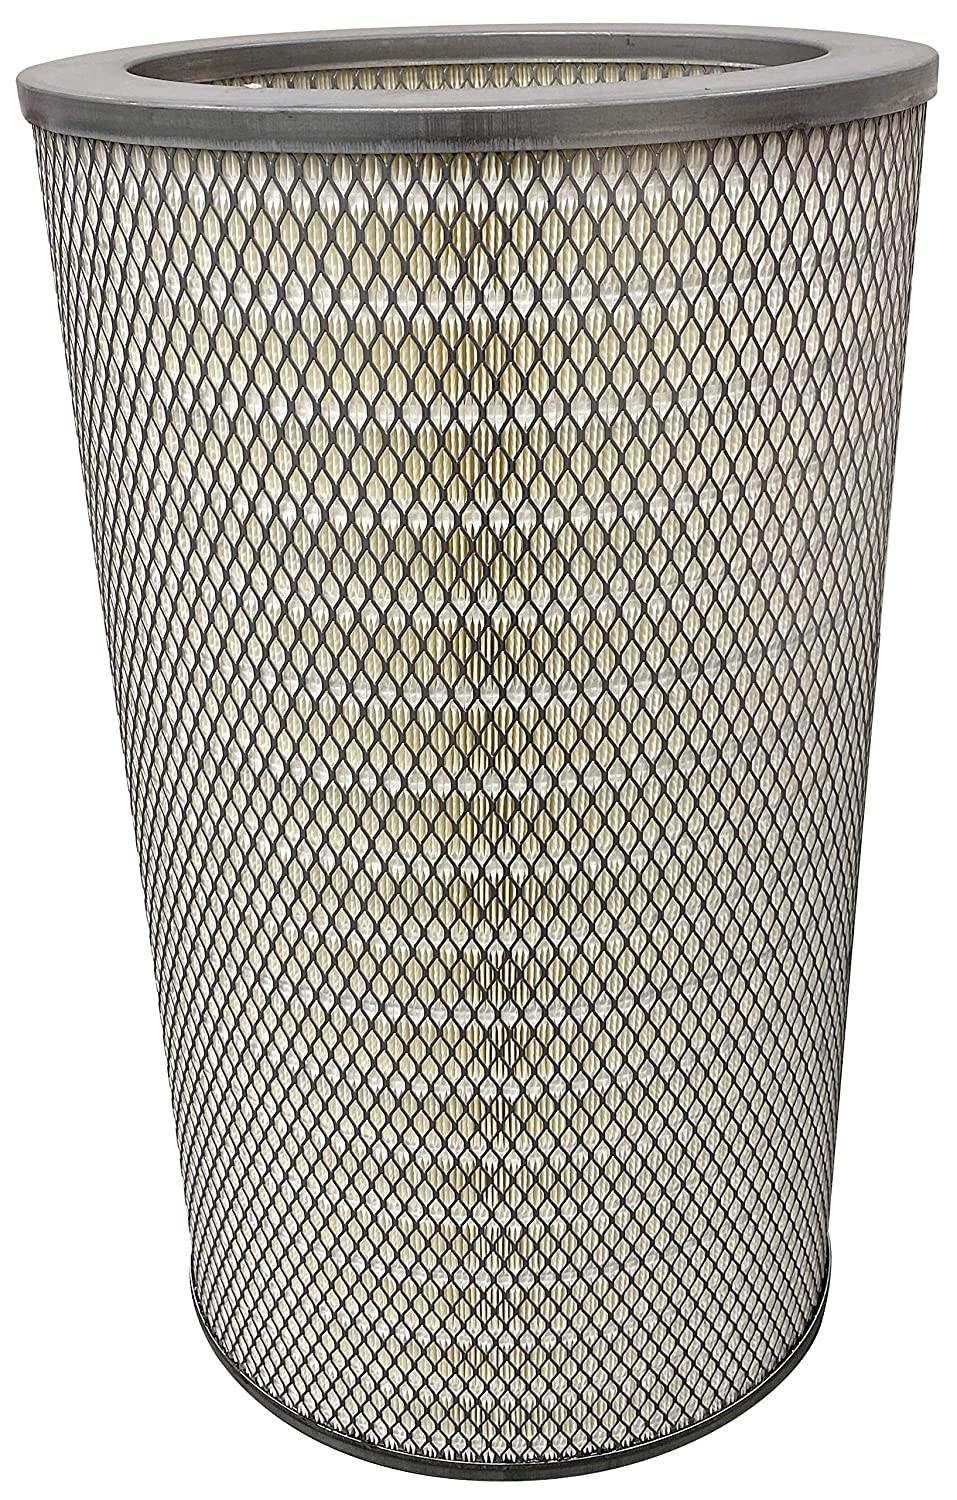 Cellulose Polyester Blend FR Height Dust Collector Filter Open-Open Pans 8.375 12.75 ID 26 OD